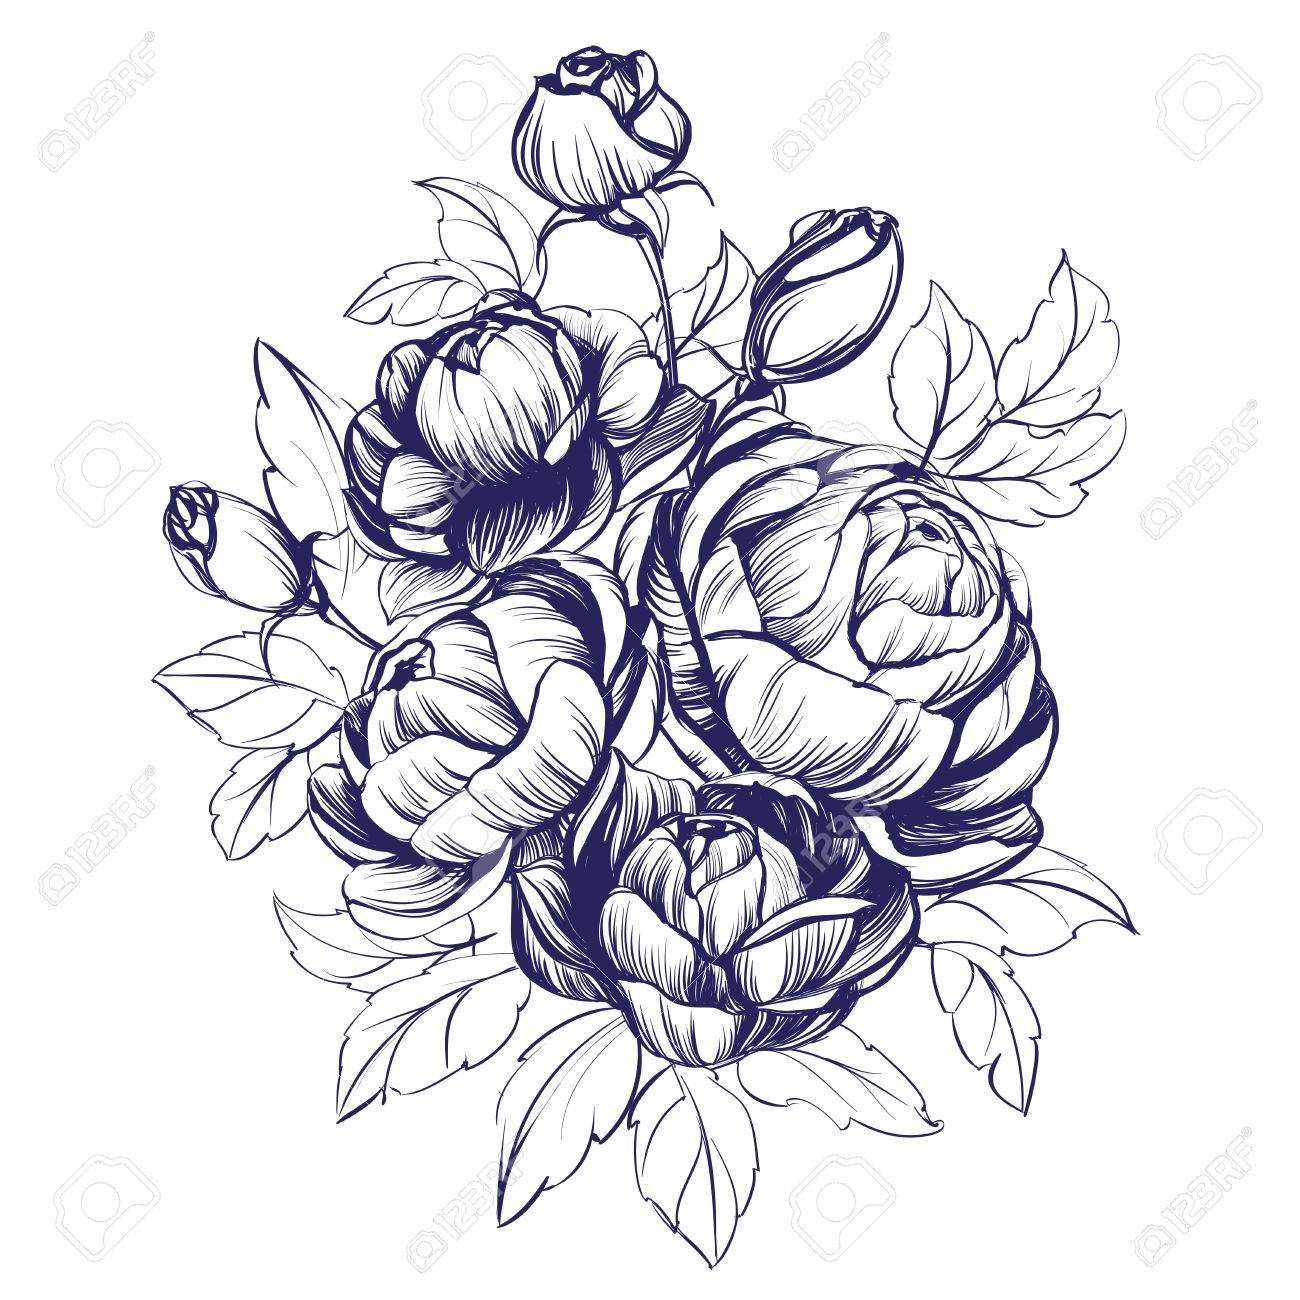 1300x1300 Floral Blooming Rose Branch Hand Drawn Vector Illustration Sketch